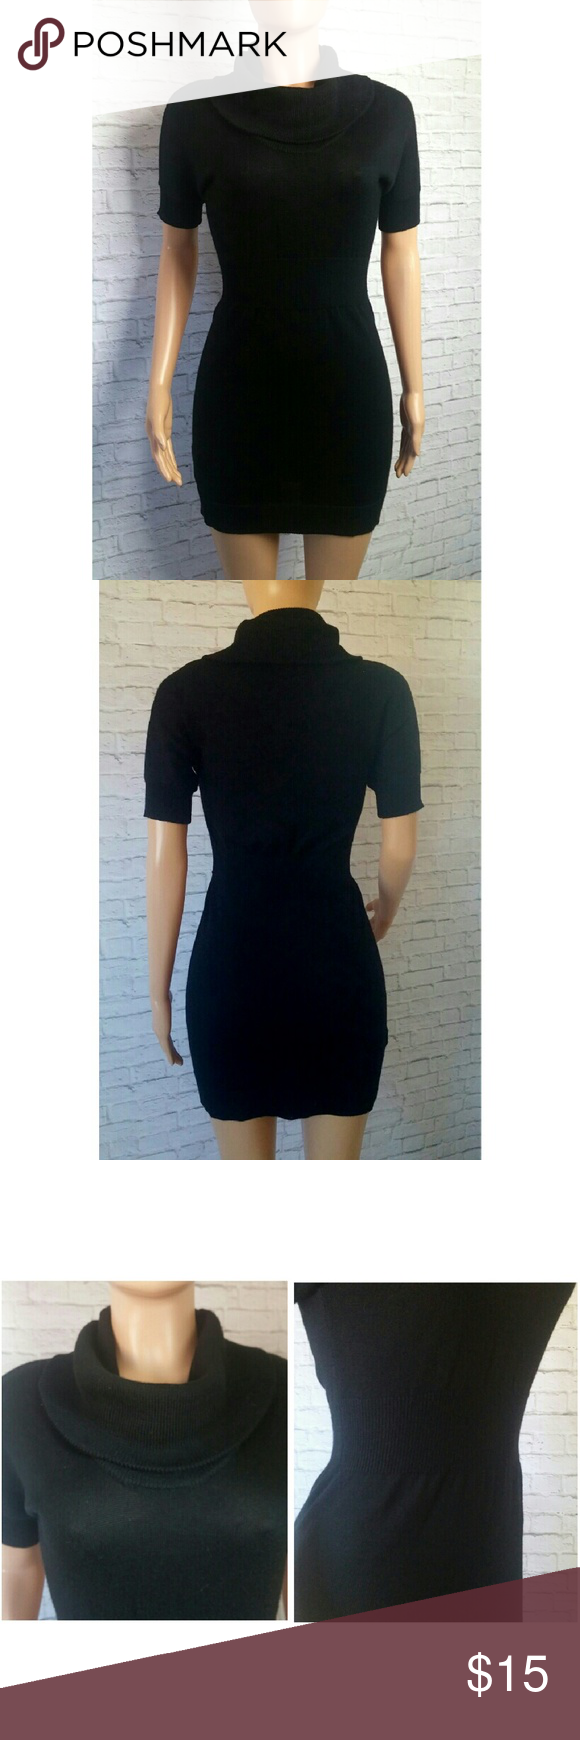 c049816817 Ann Taylor Loft Black Sweater Dress Sexy form fitting black sweater dress  with turtle neck and half sleeves. Dress is semi sheer. Size xsp .